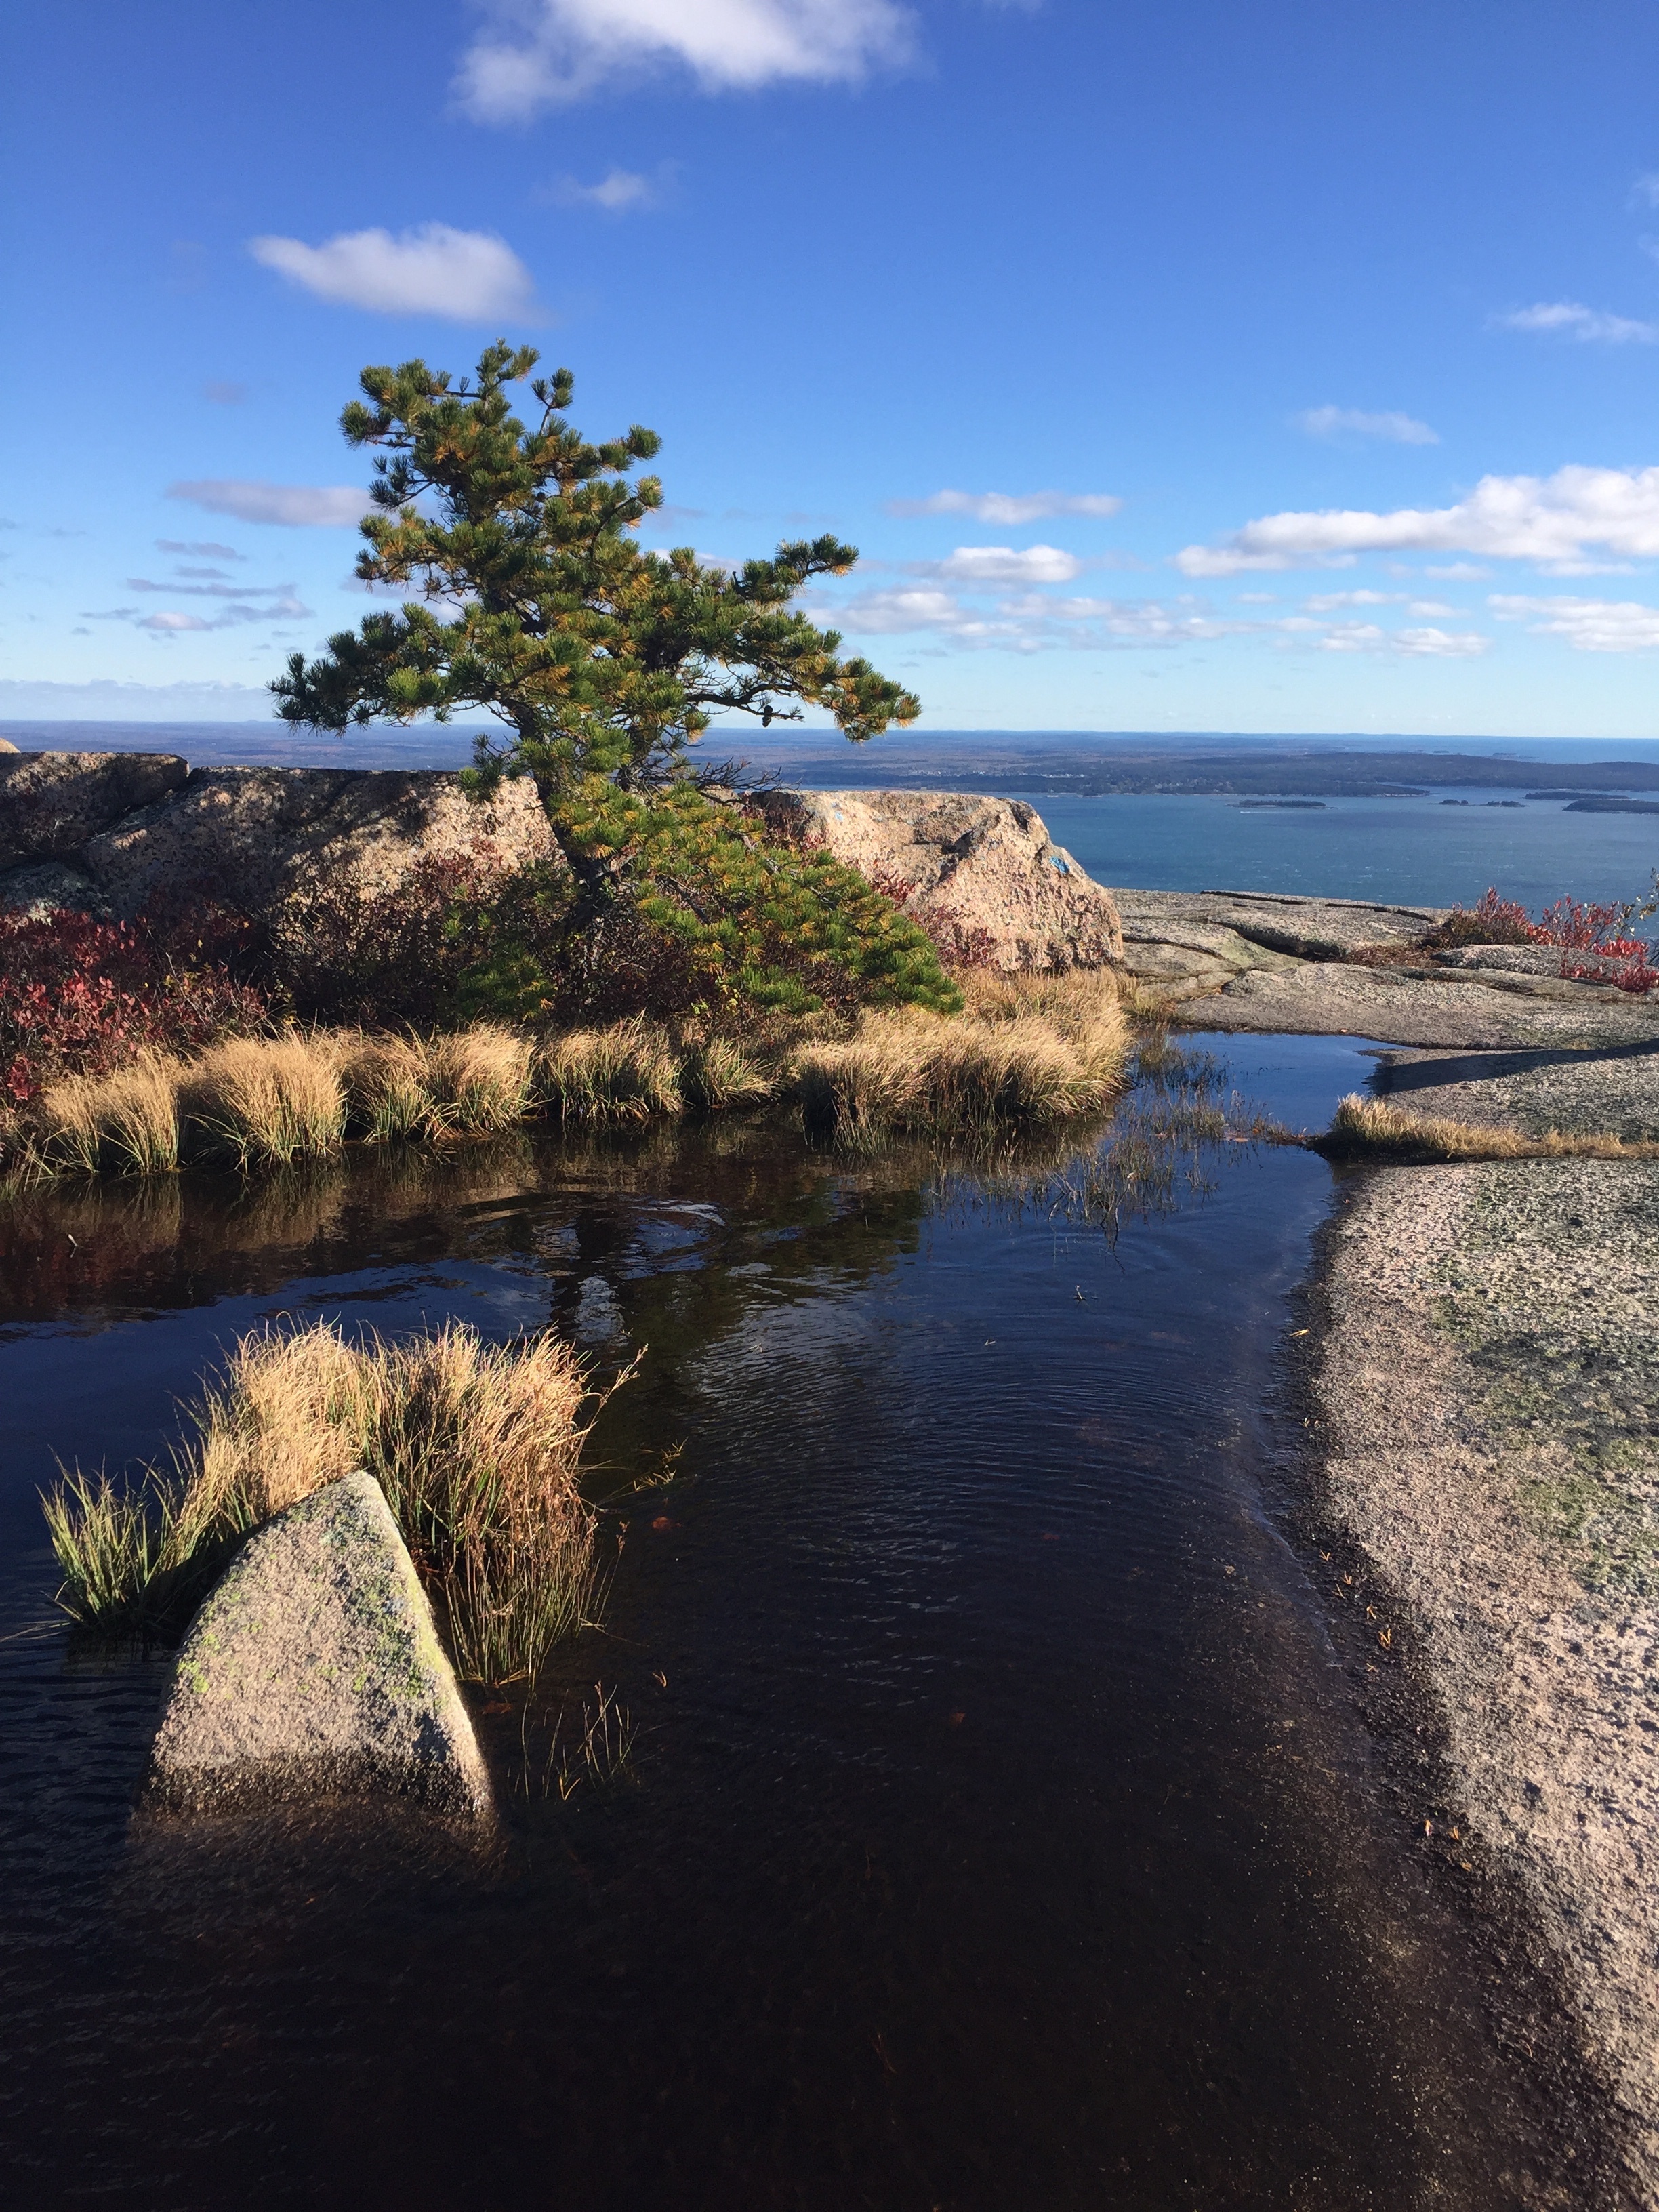 THE SUPERLATIVES OF ACADIA NATIONAL PARK